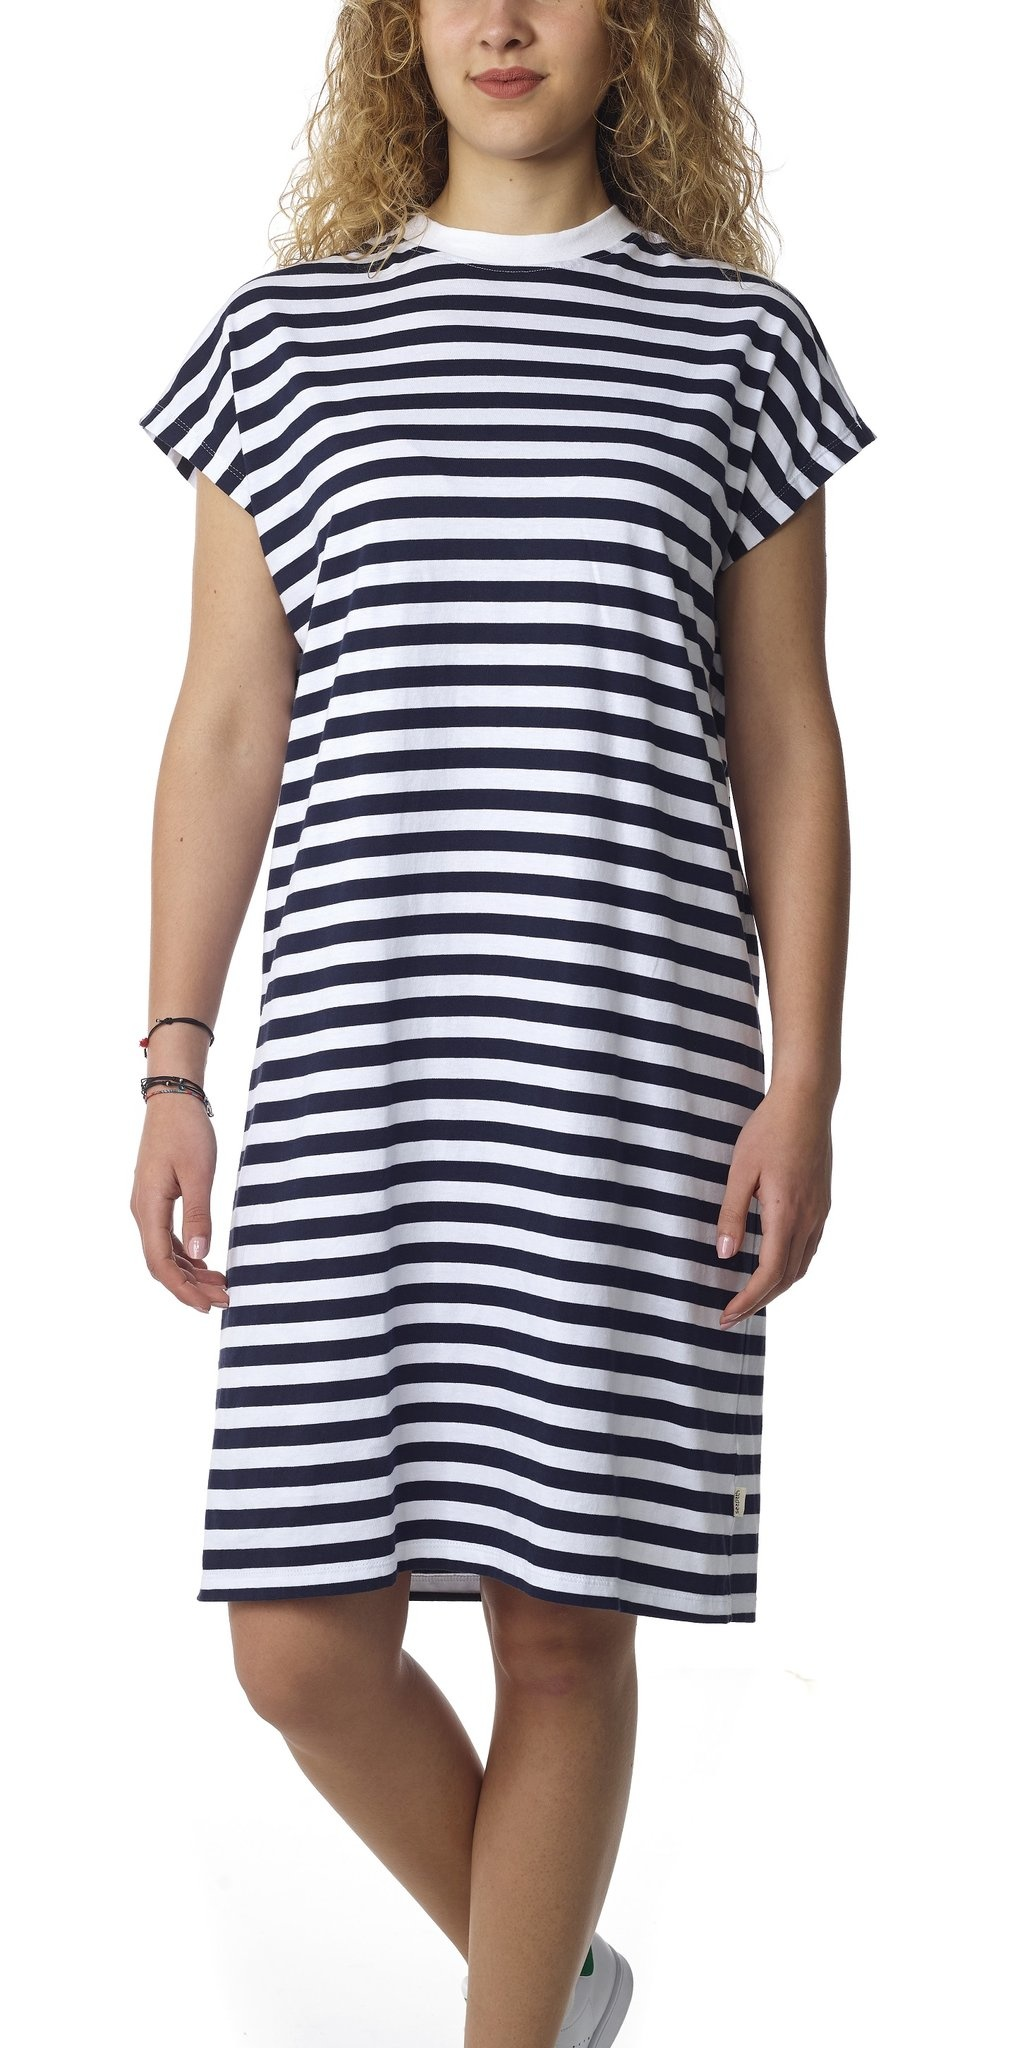 Seapath Seapath Lines Dress Navy Blue